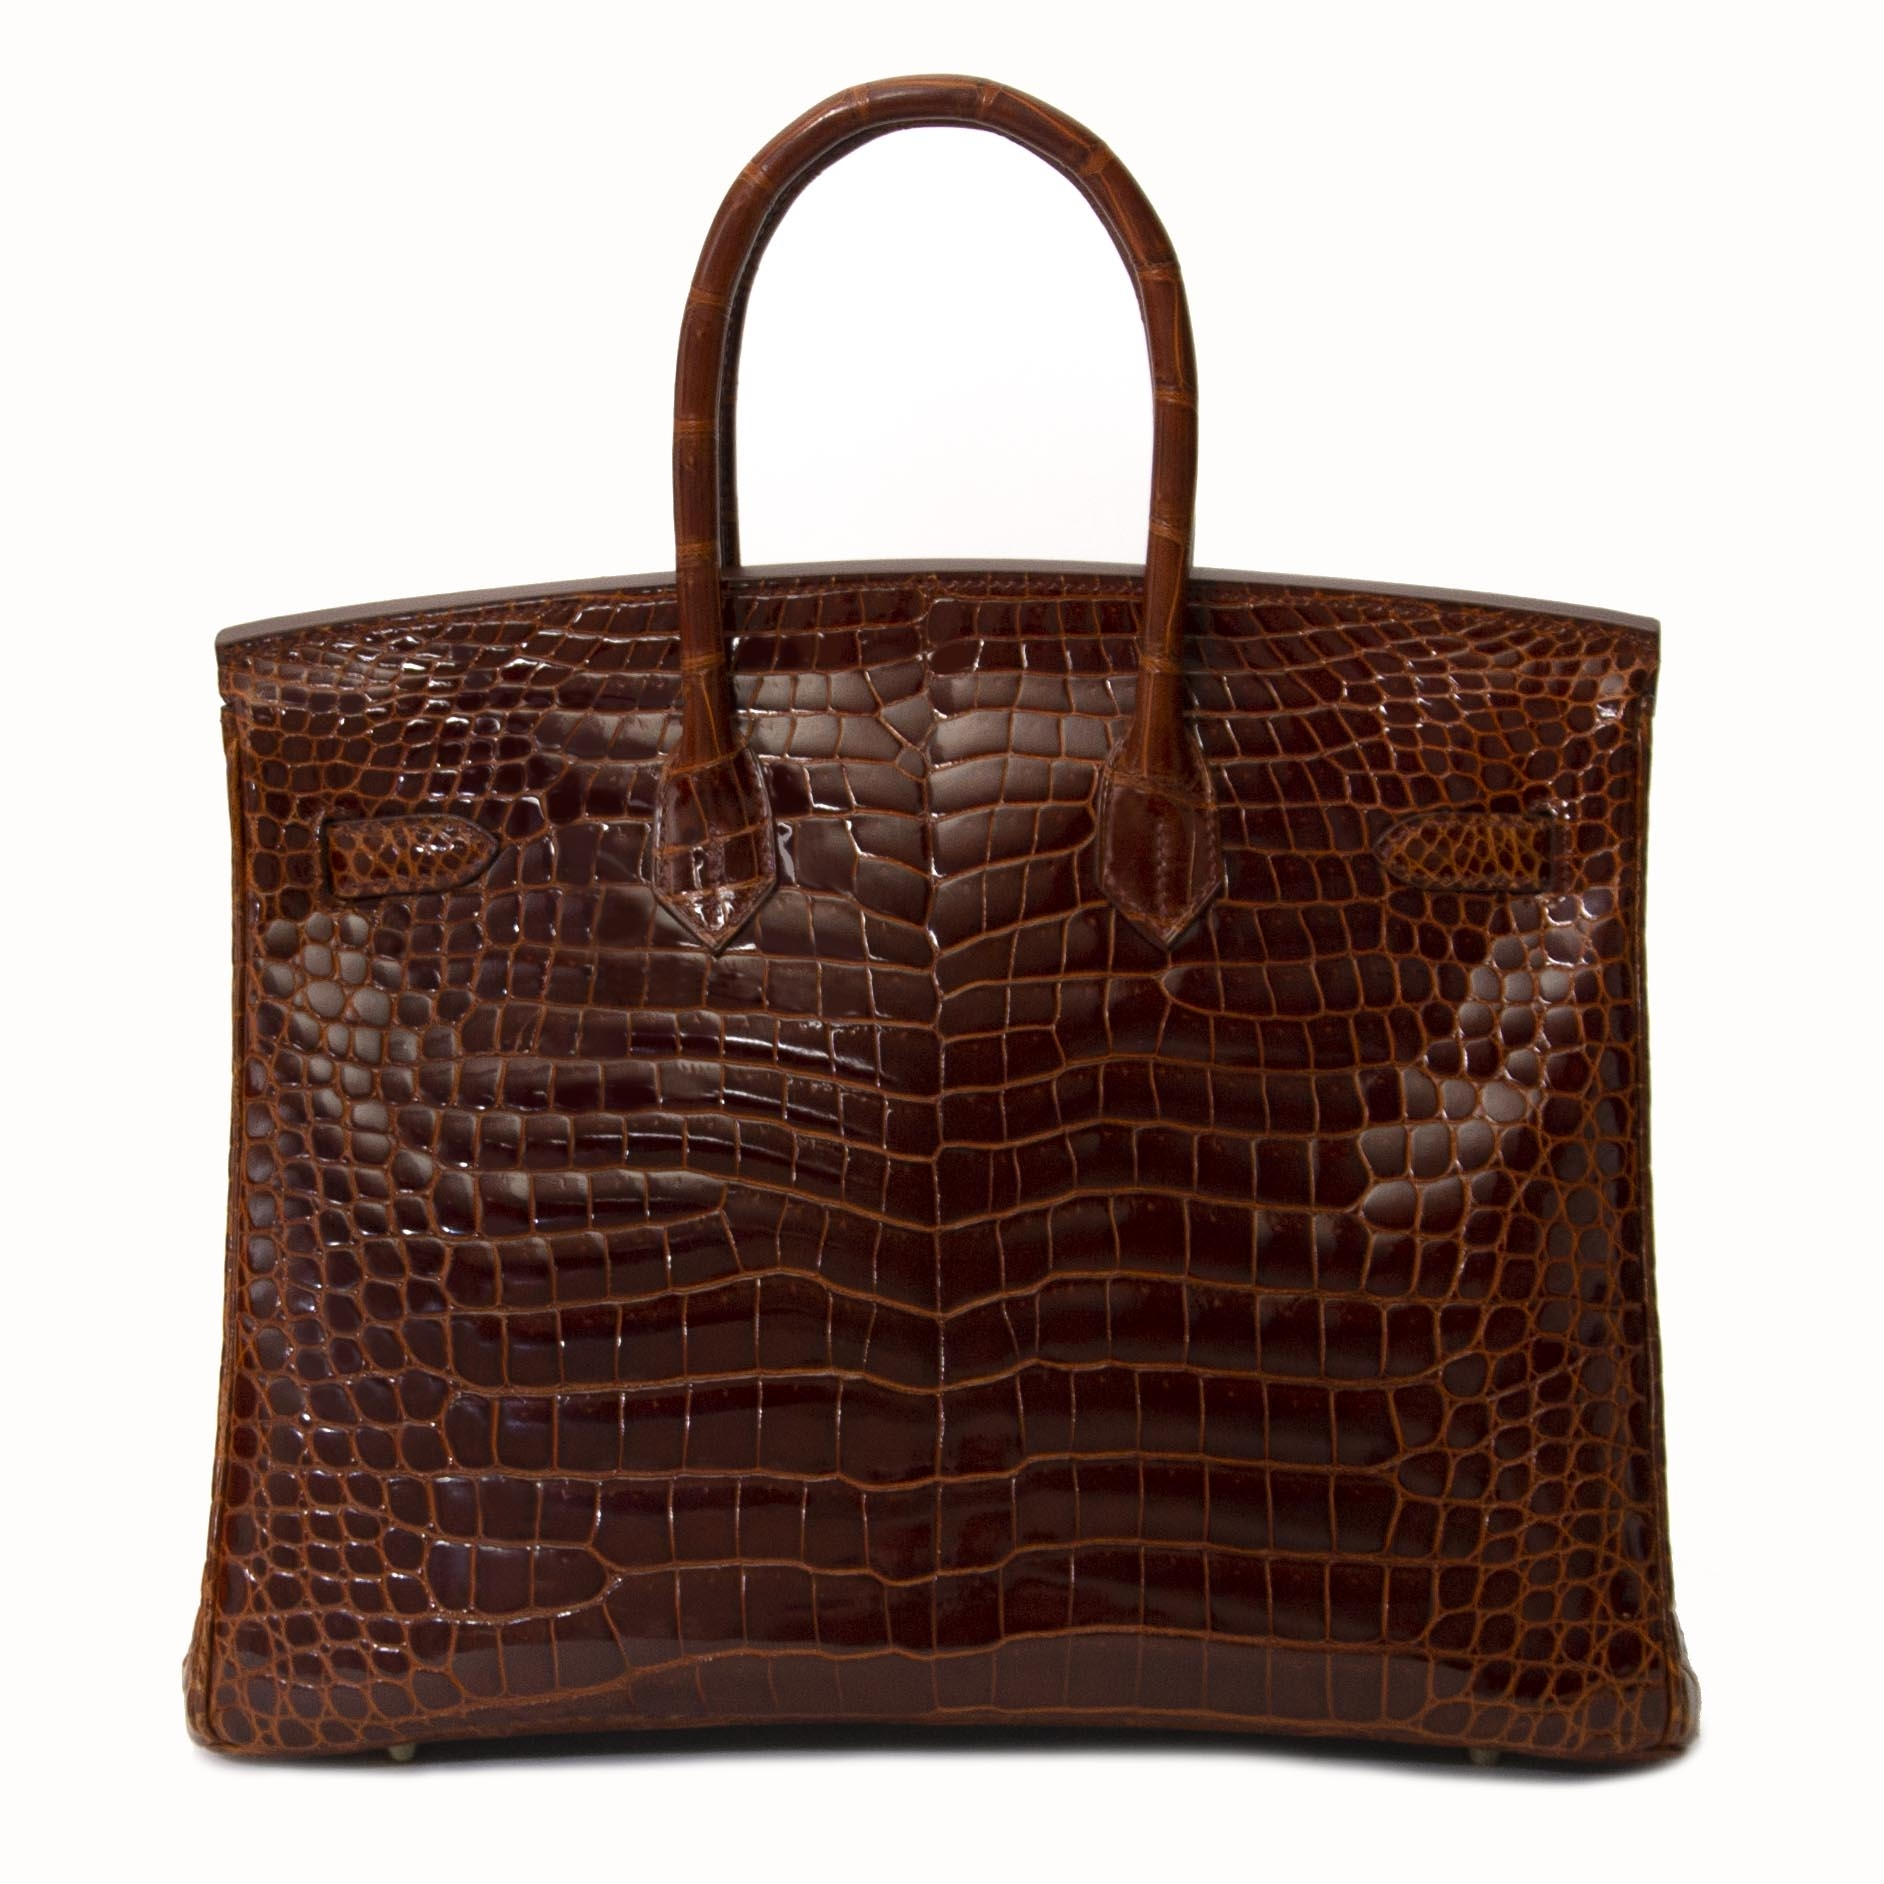 No waiting list shipping worldwide best price best value Hermès Birkin 35 Crocodile Porosus Havane GHW